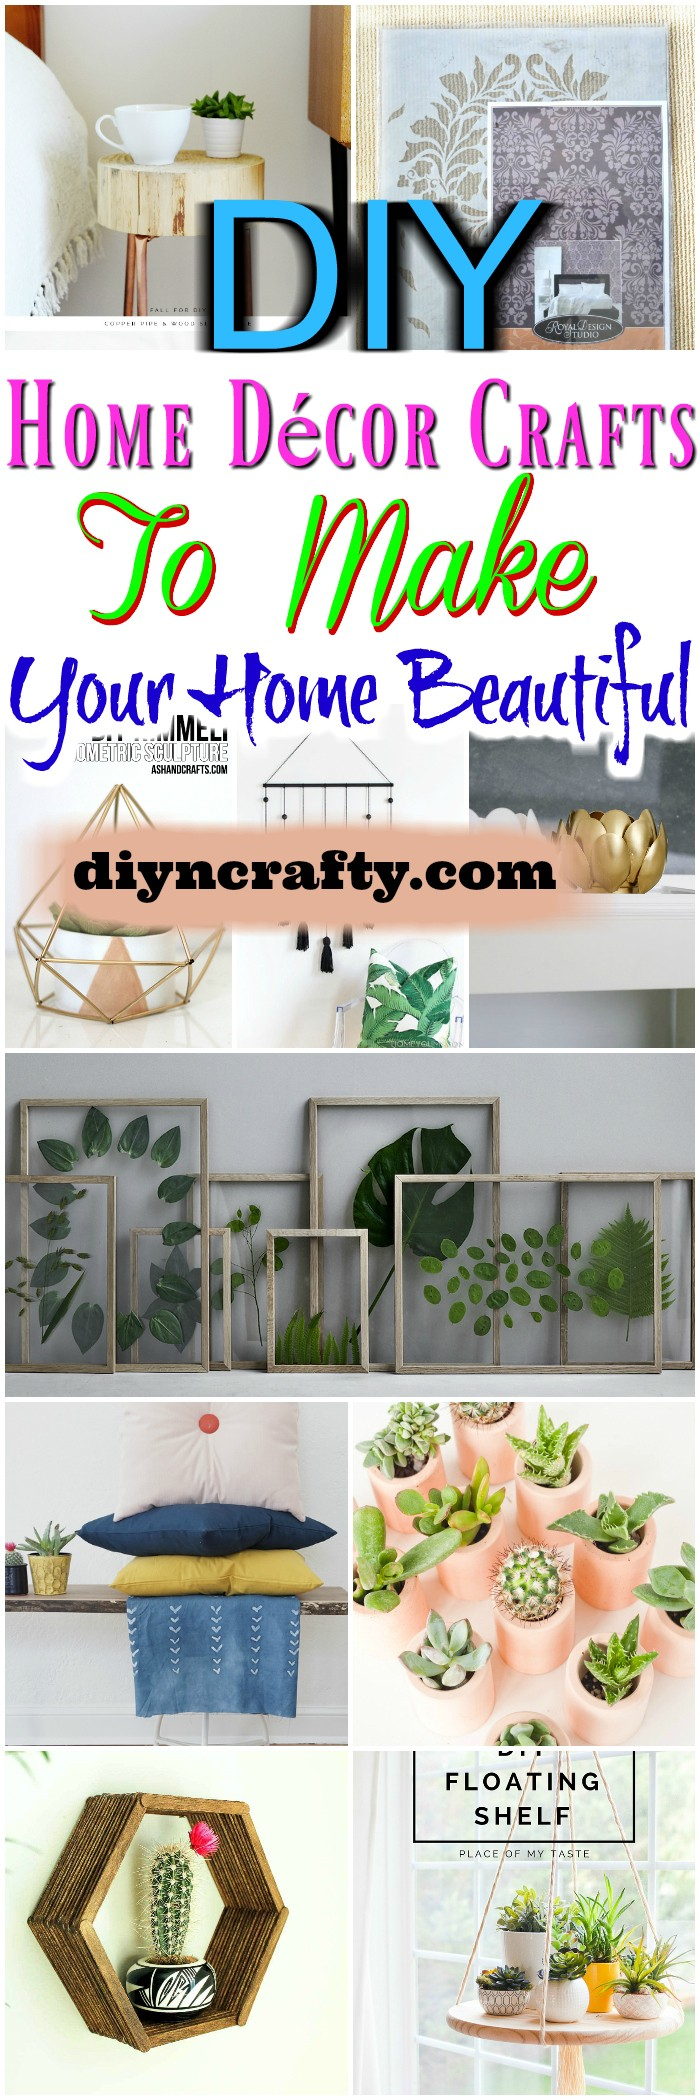 DIY Home Décor Crafts To Make Your Home Beautiful